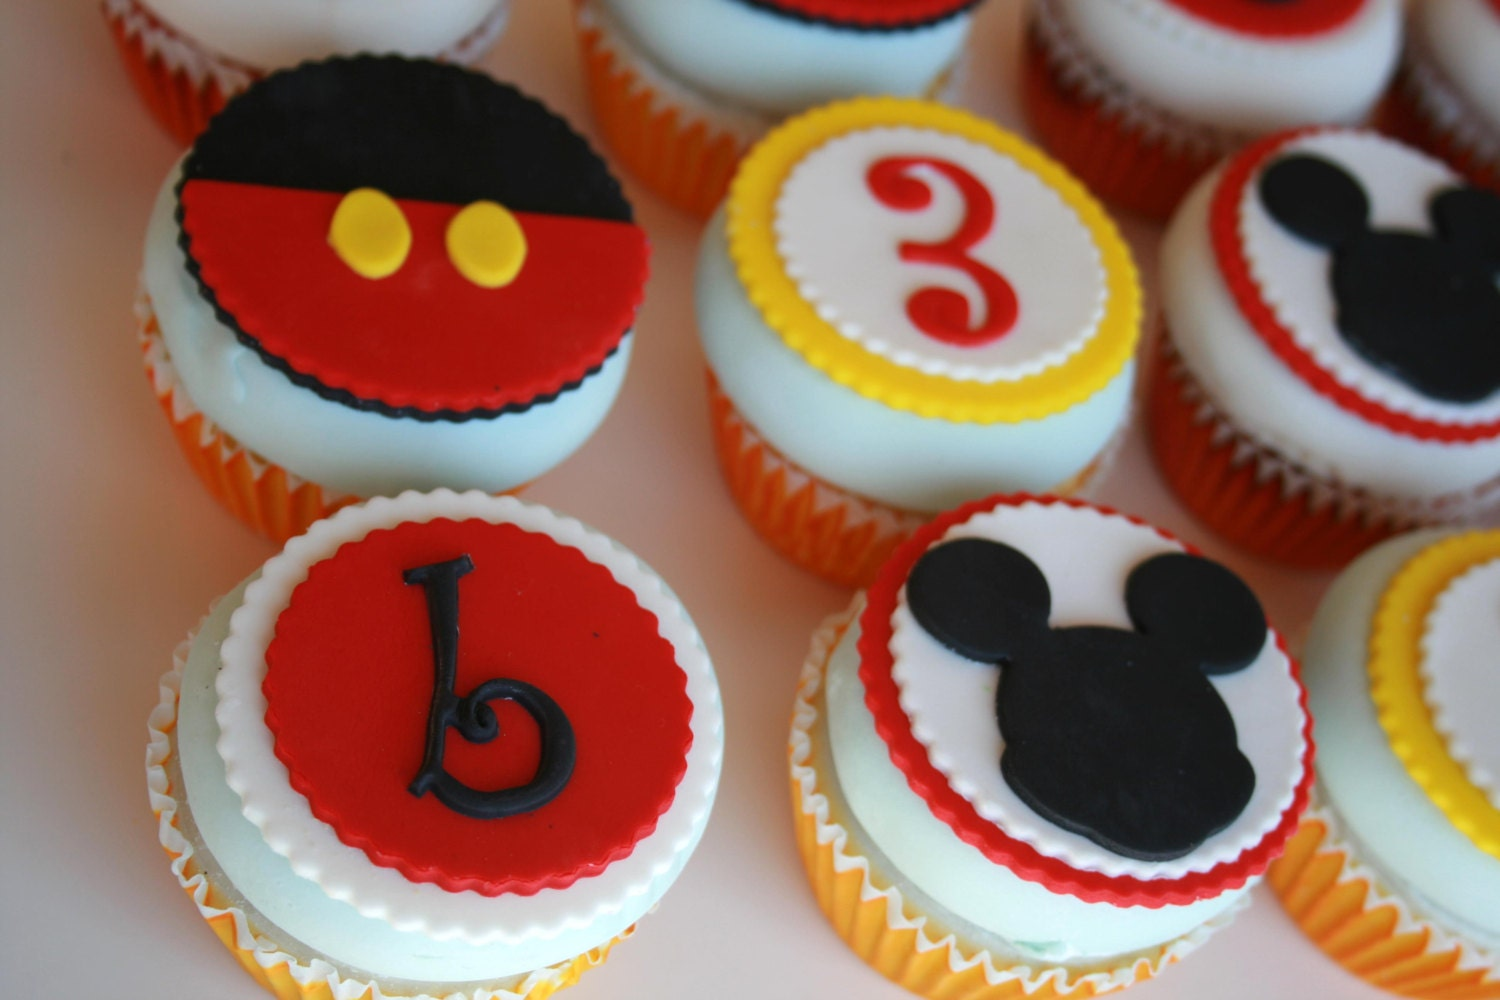 Baby Mickey Mouse Edible Cake Decorations Mickey Mouse Edible Cake Decorations Uk Cake